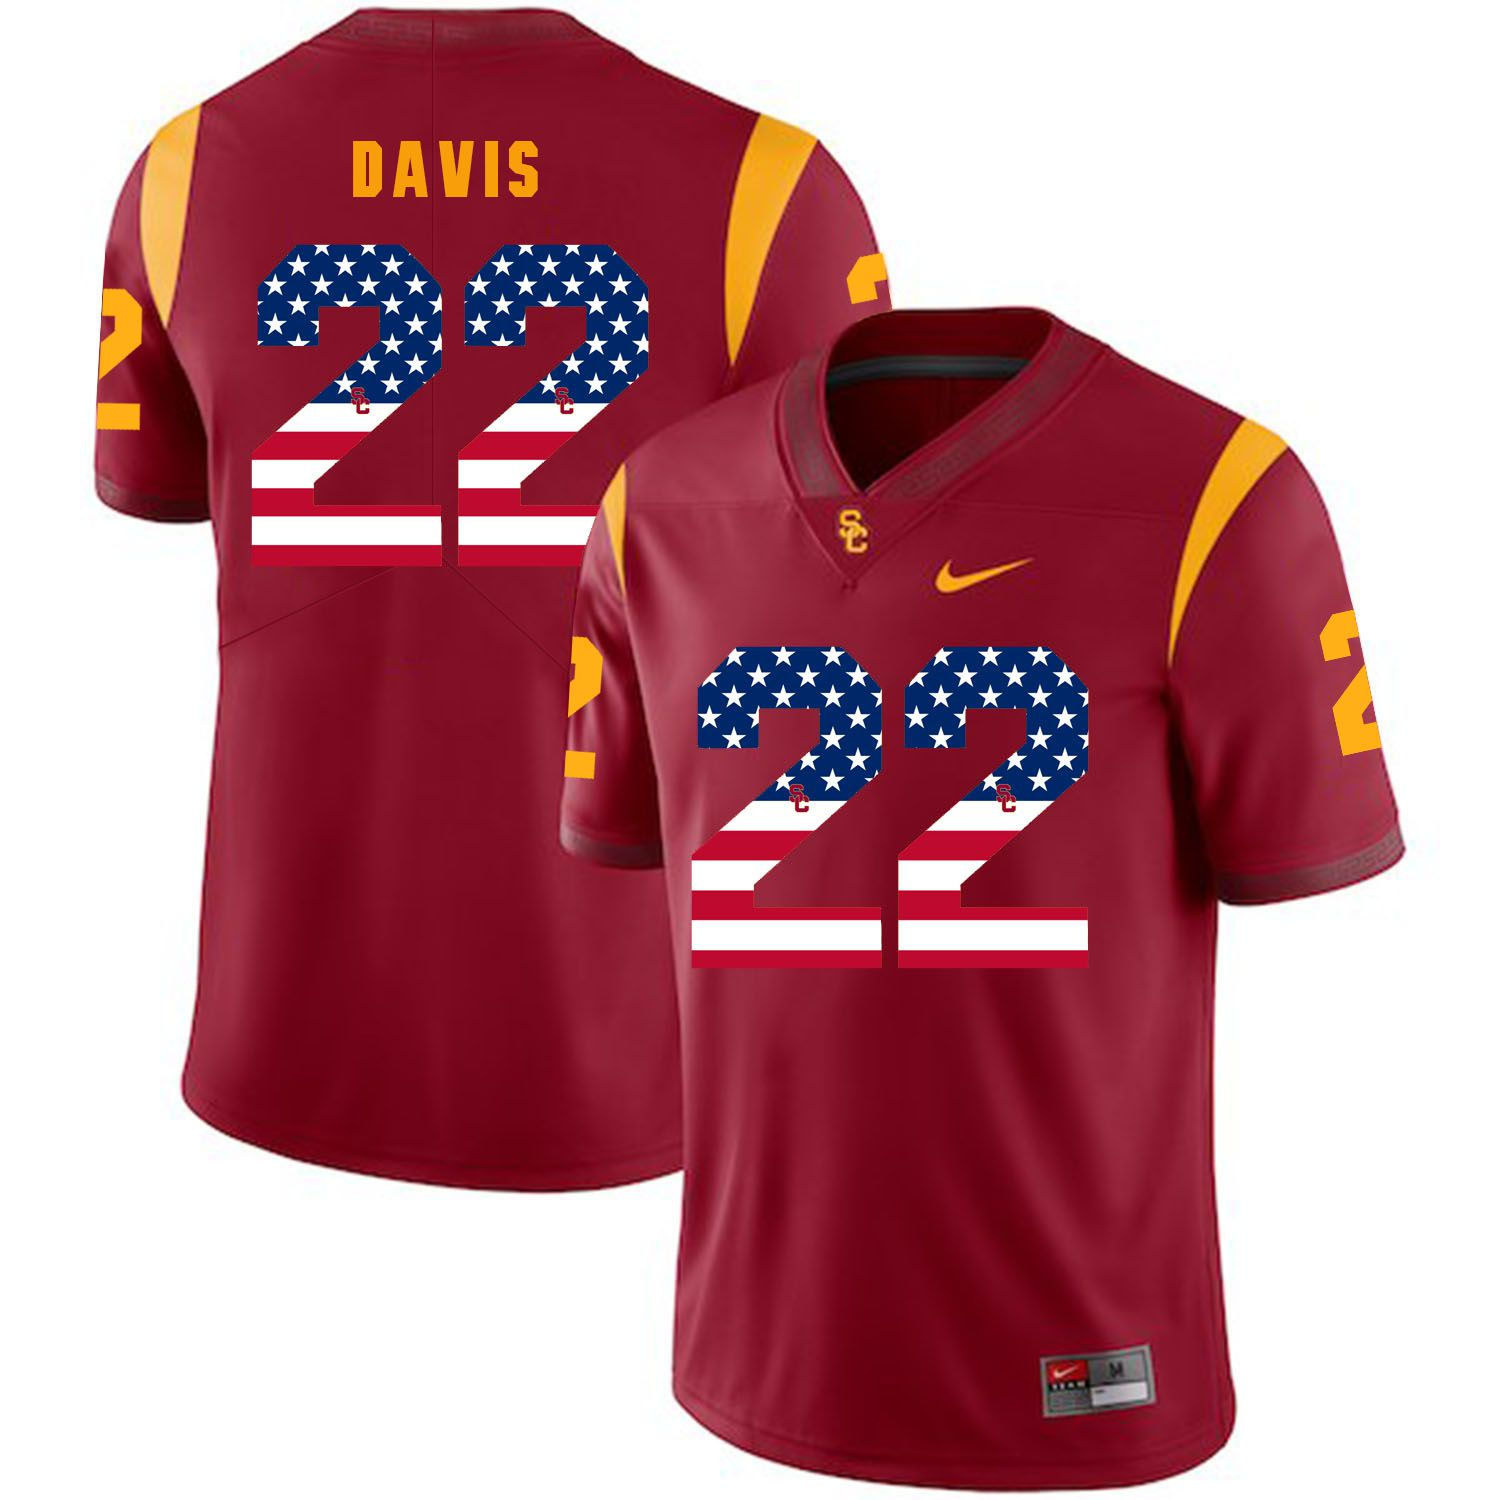 Men USC Trojans 22 Davis Red Flag Customized NCAA Jerseys